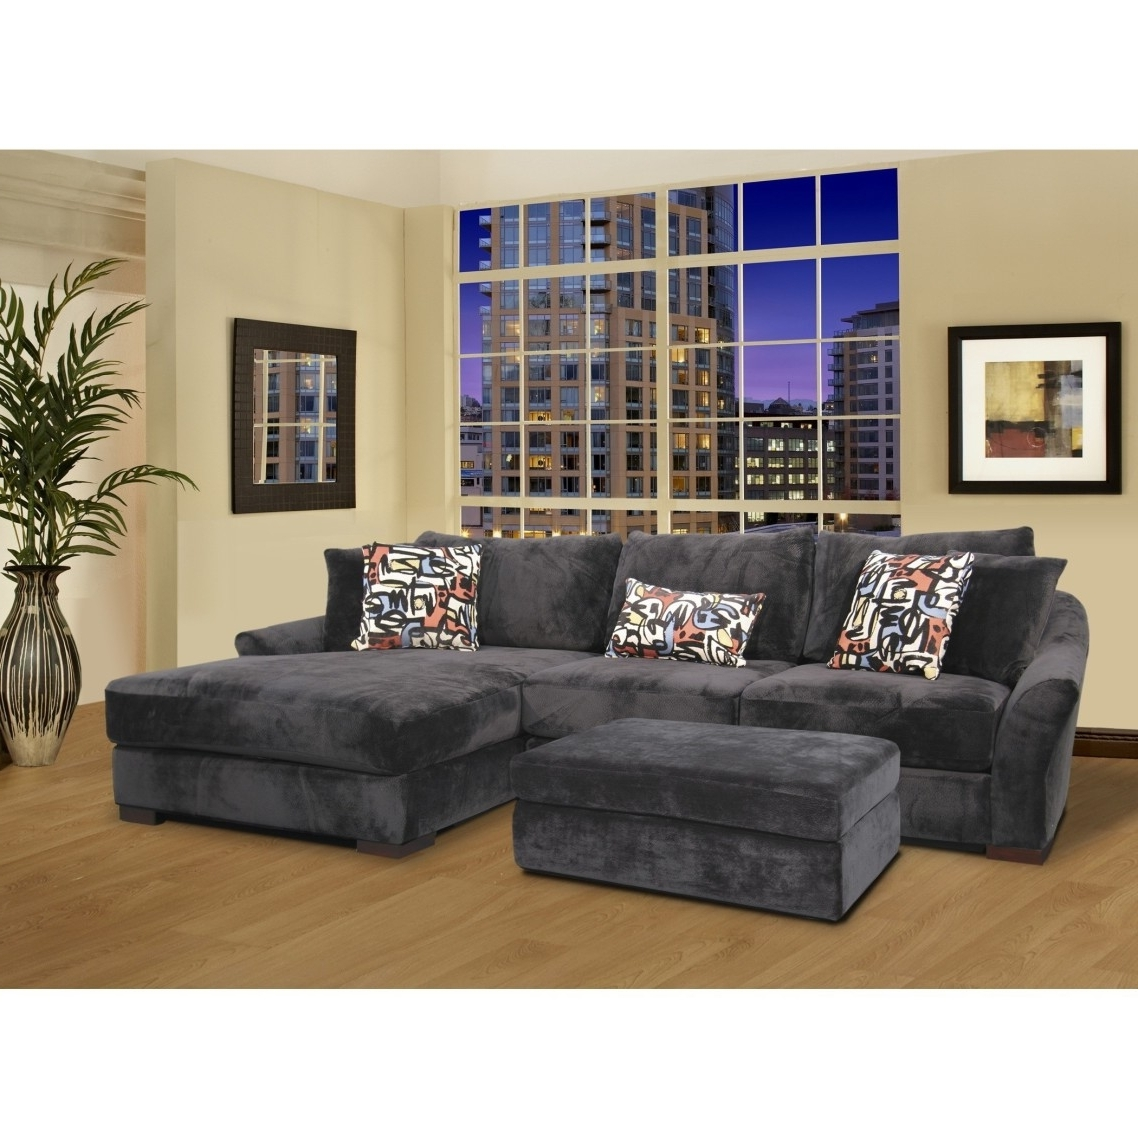 Gray Velvet Oversized Sectional Sleeper Sofa With Left Chaise For Trendy Oversized Sectional Sofas With Chaise (View 14 of 15)